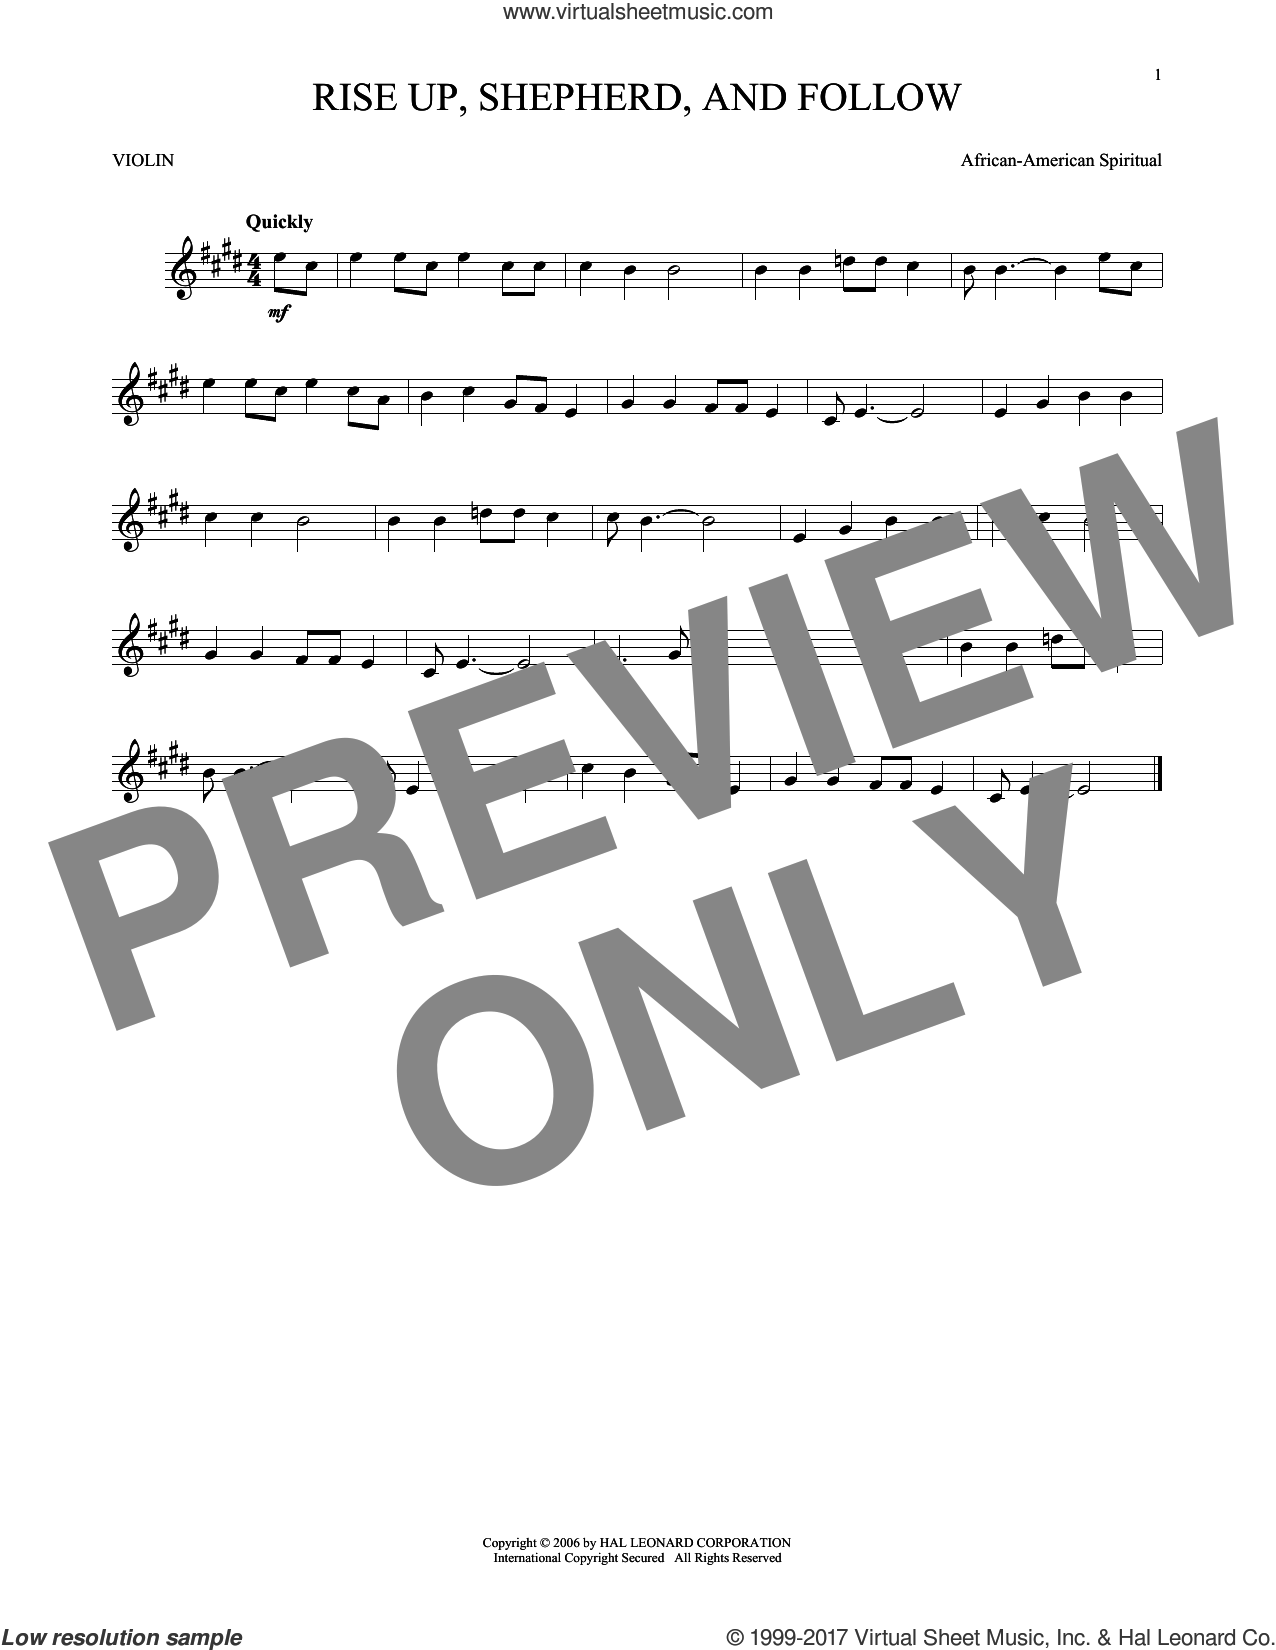 Rise Up, Shepherd, And Follow sheet music for violin solo, intermediate skill level